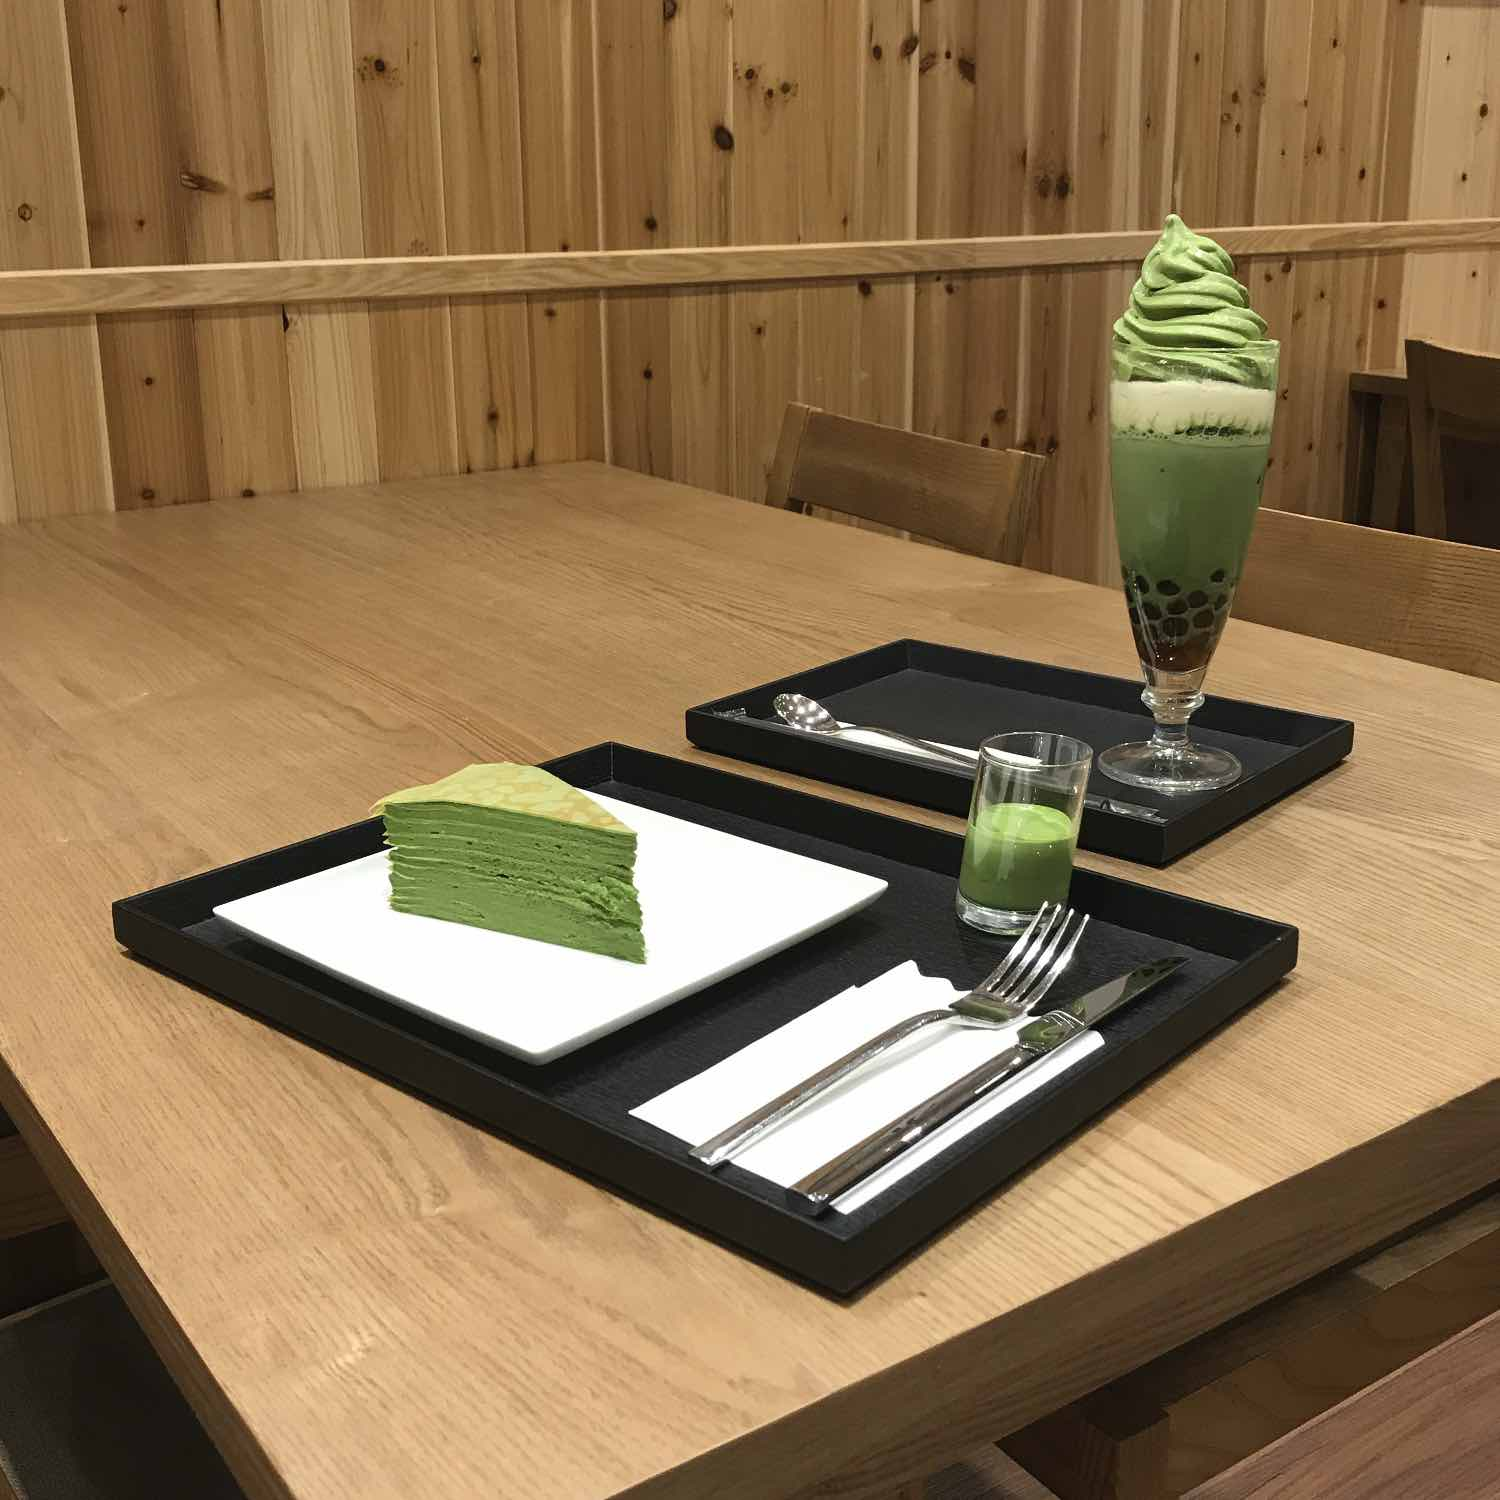 matcha one dessert cafe